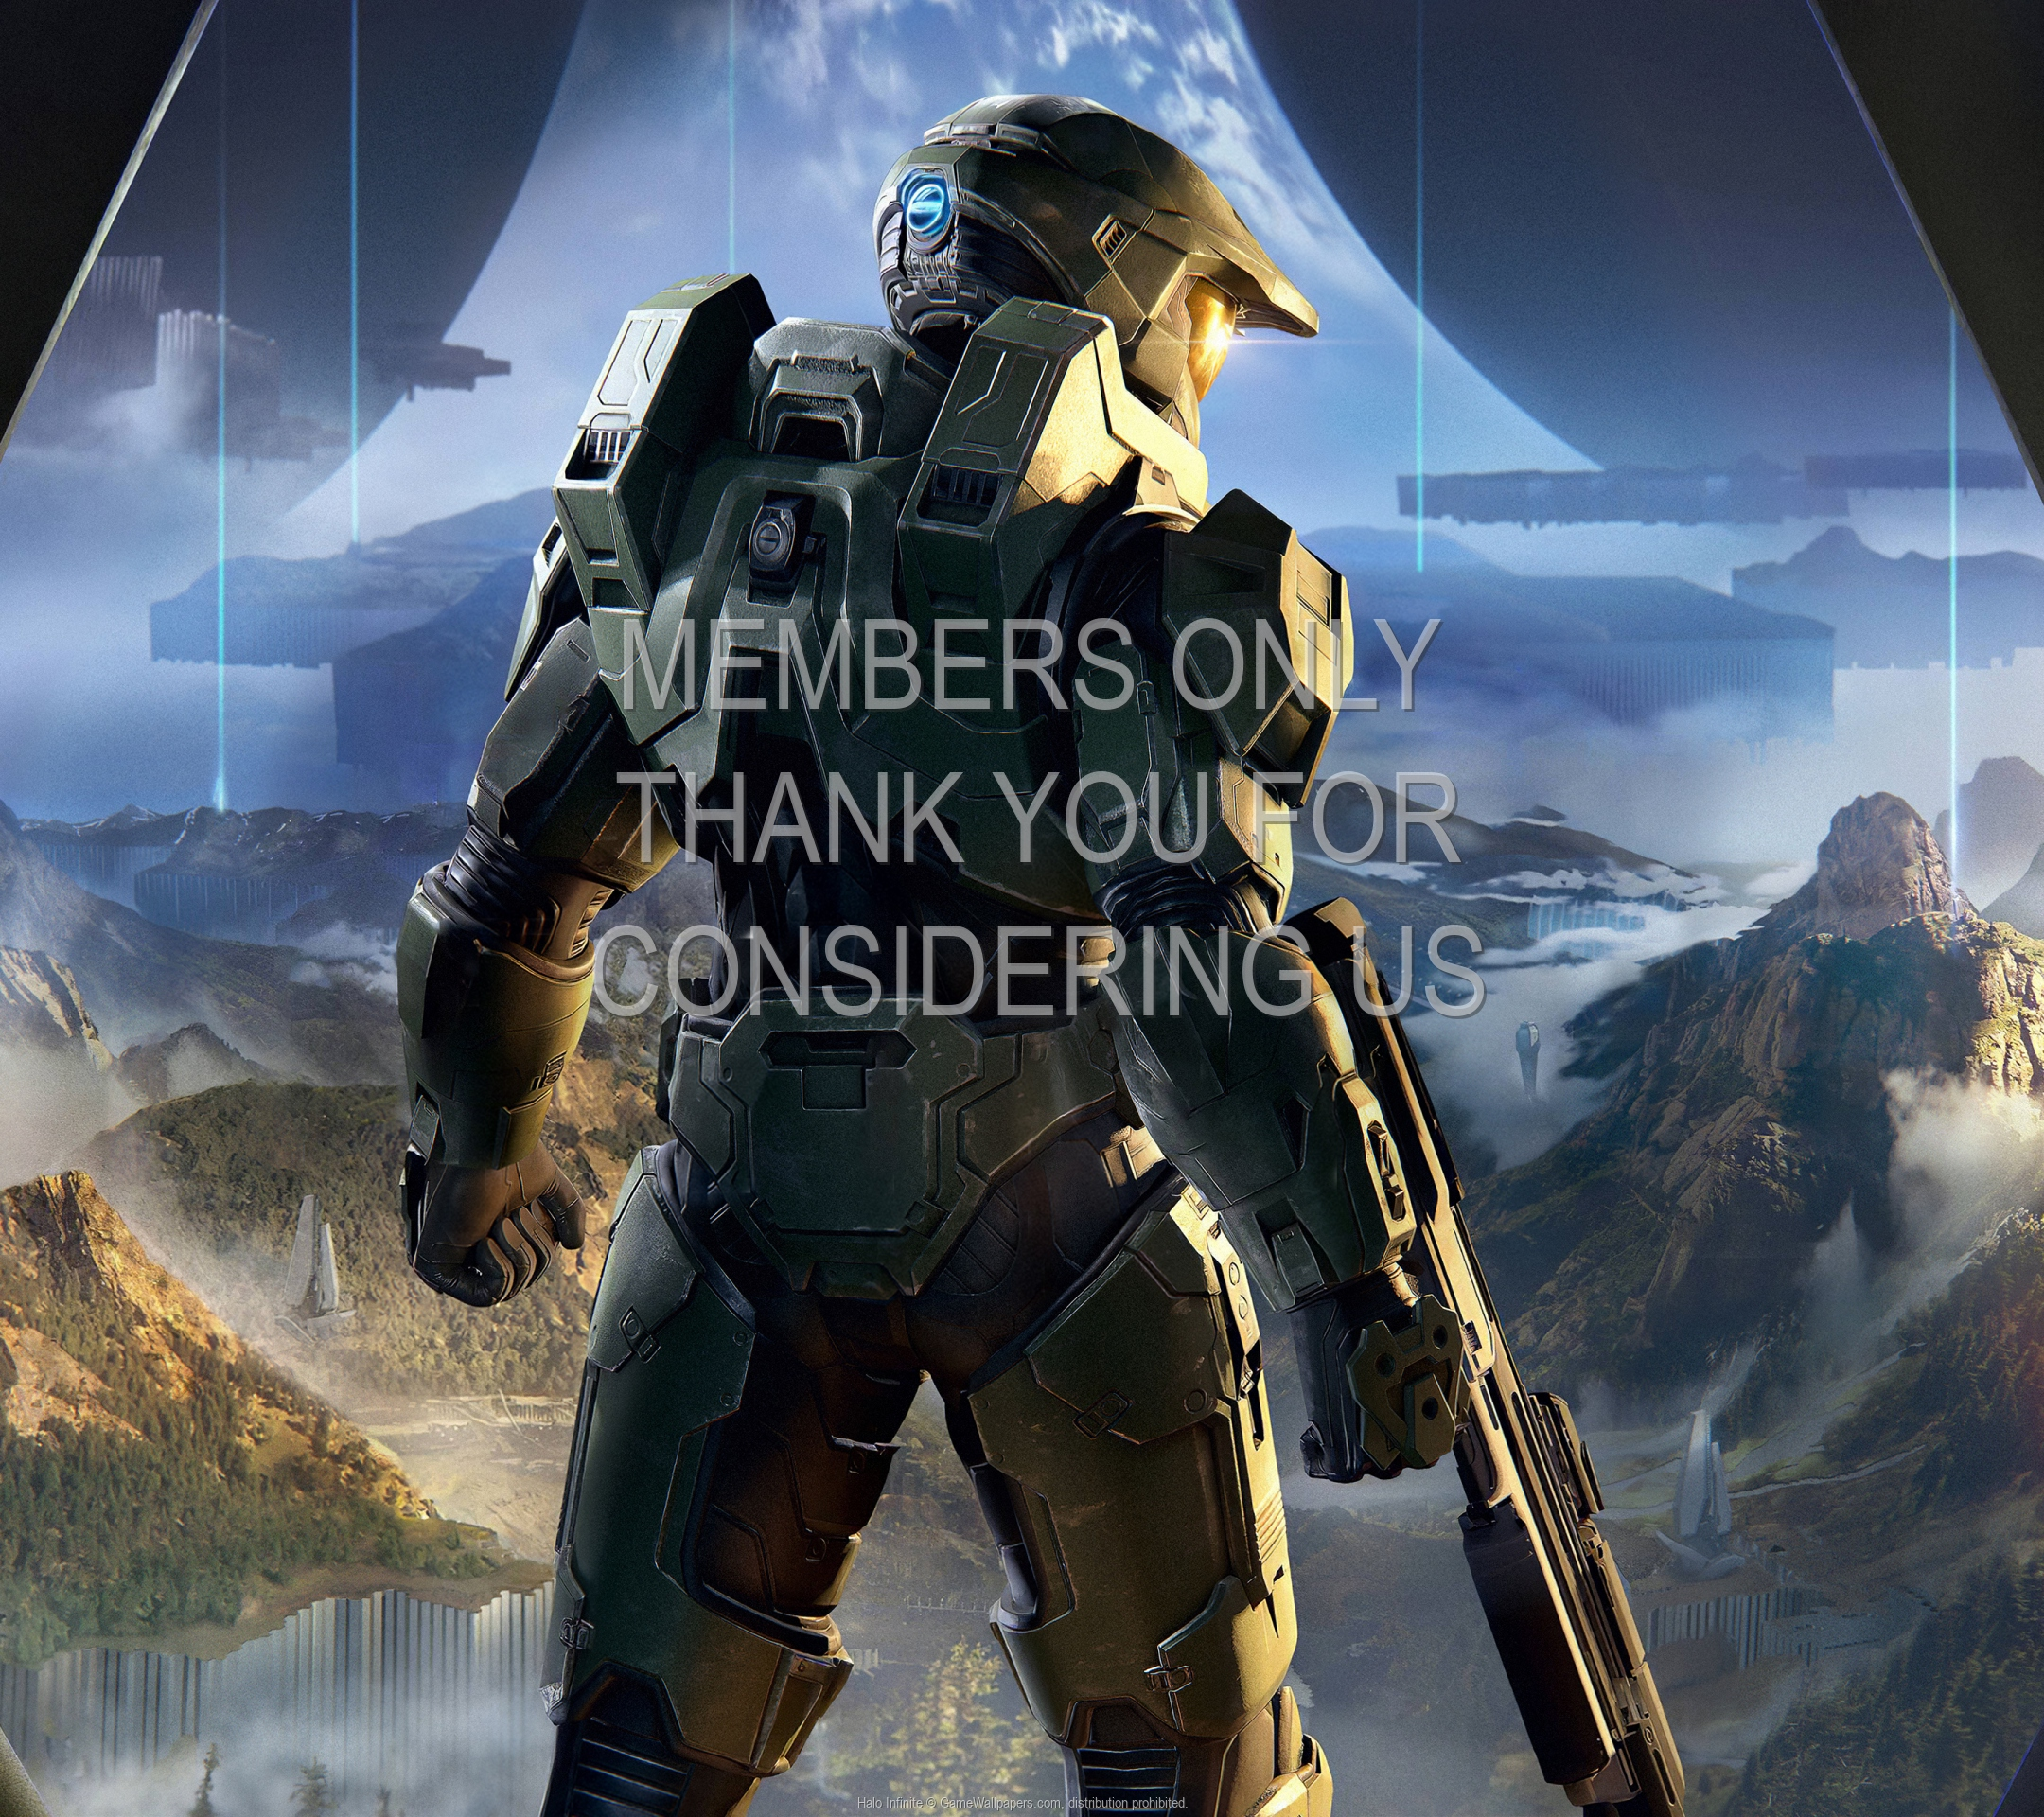 Halo: Infinite 1920x1080 Mobile wallpaper or background 02